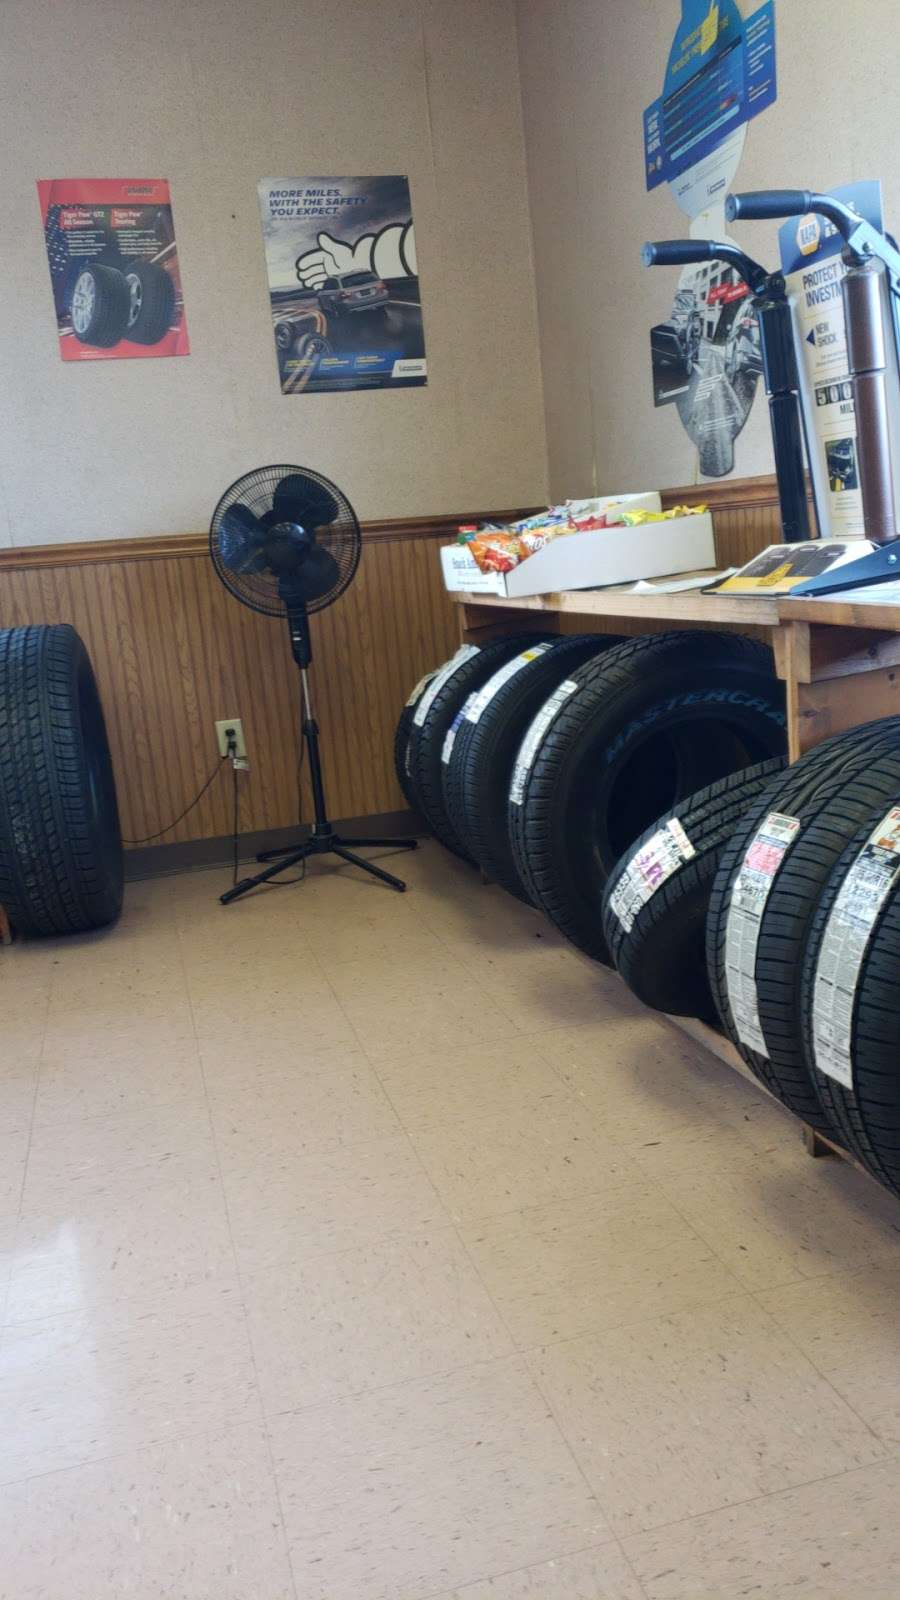 D&G New and Used Tires - car repair    Photo 3 of 10   Address: 850 Pennsylvania Ave, Hagerstown, MD 21742, USA   Phone: (301) 733-1450